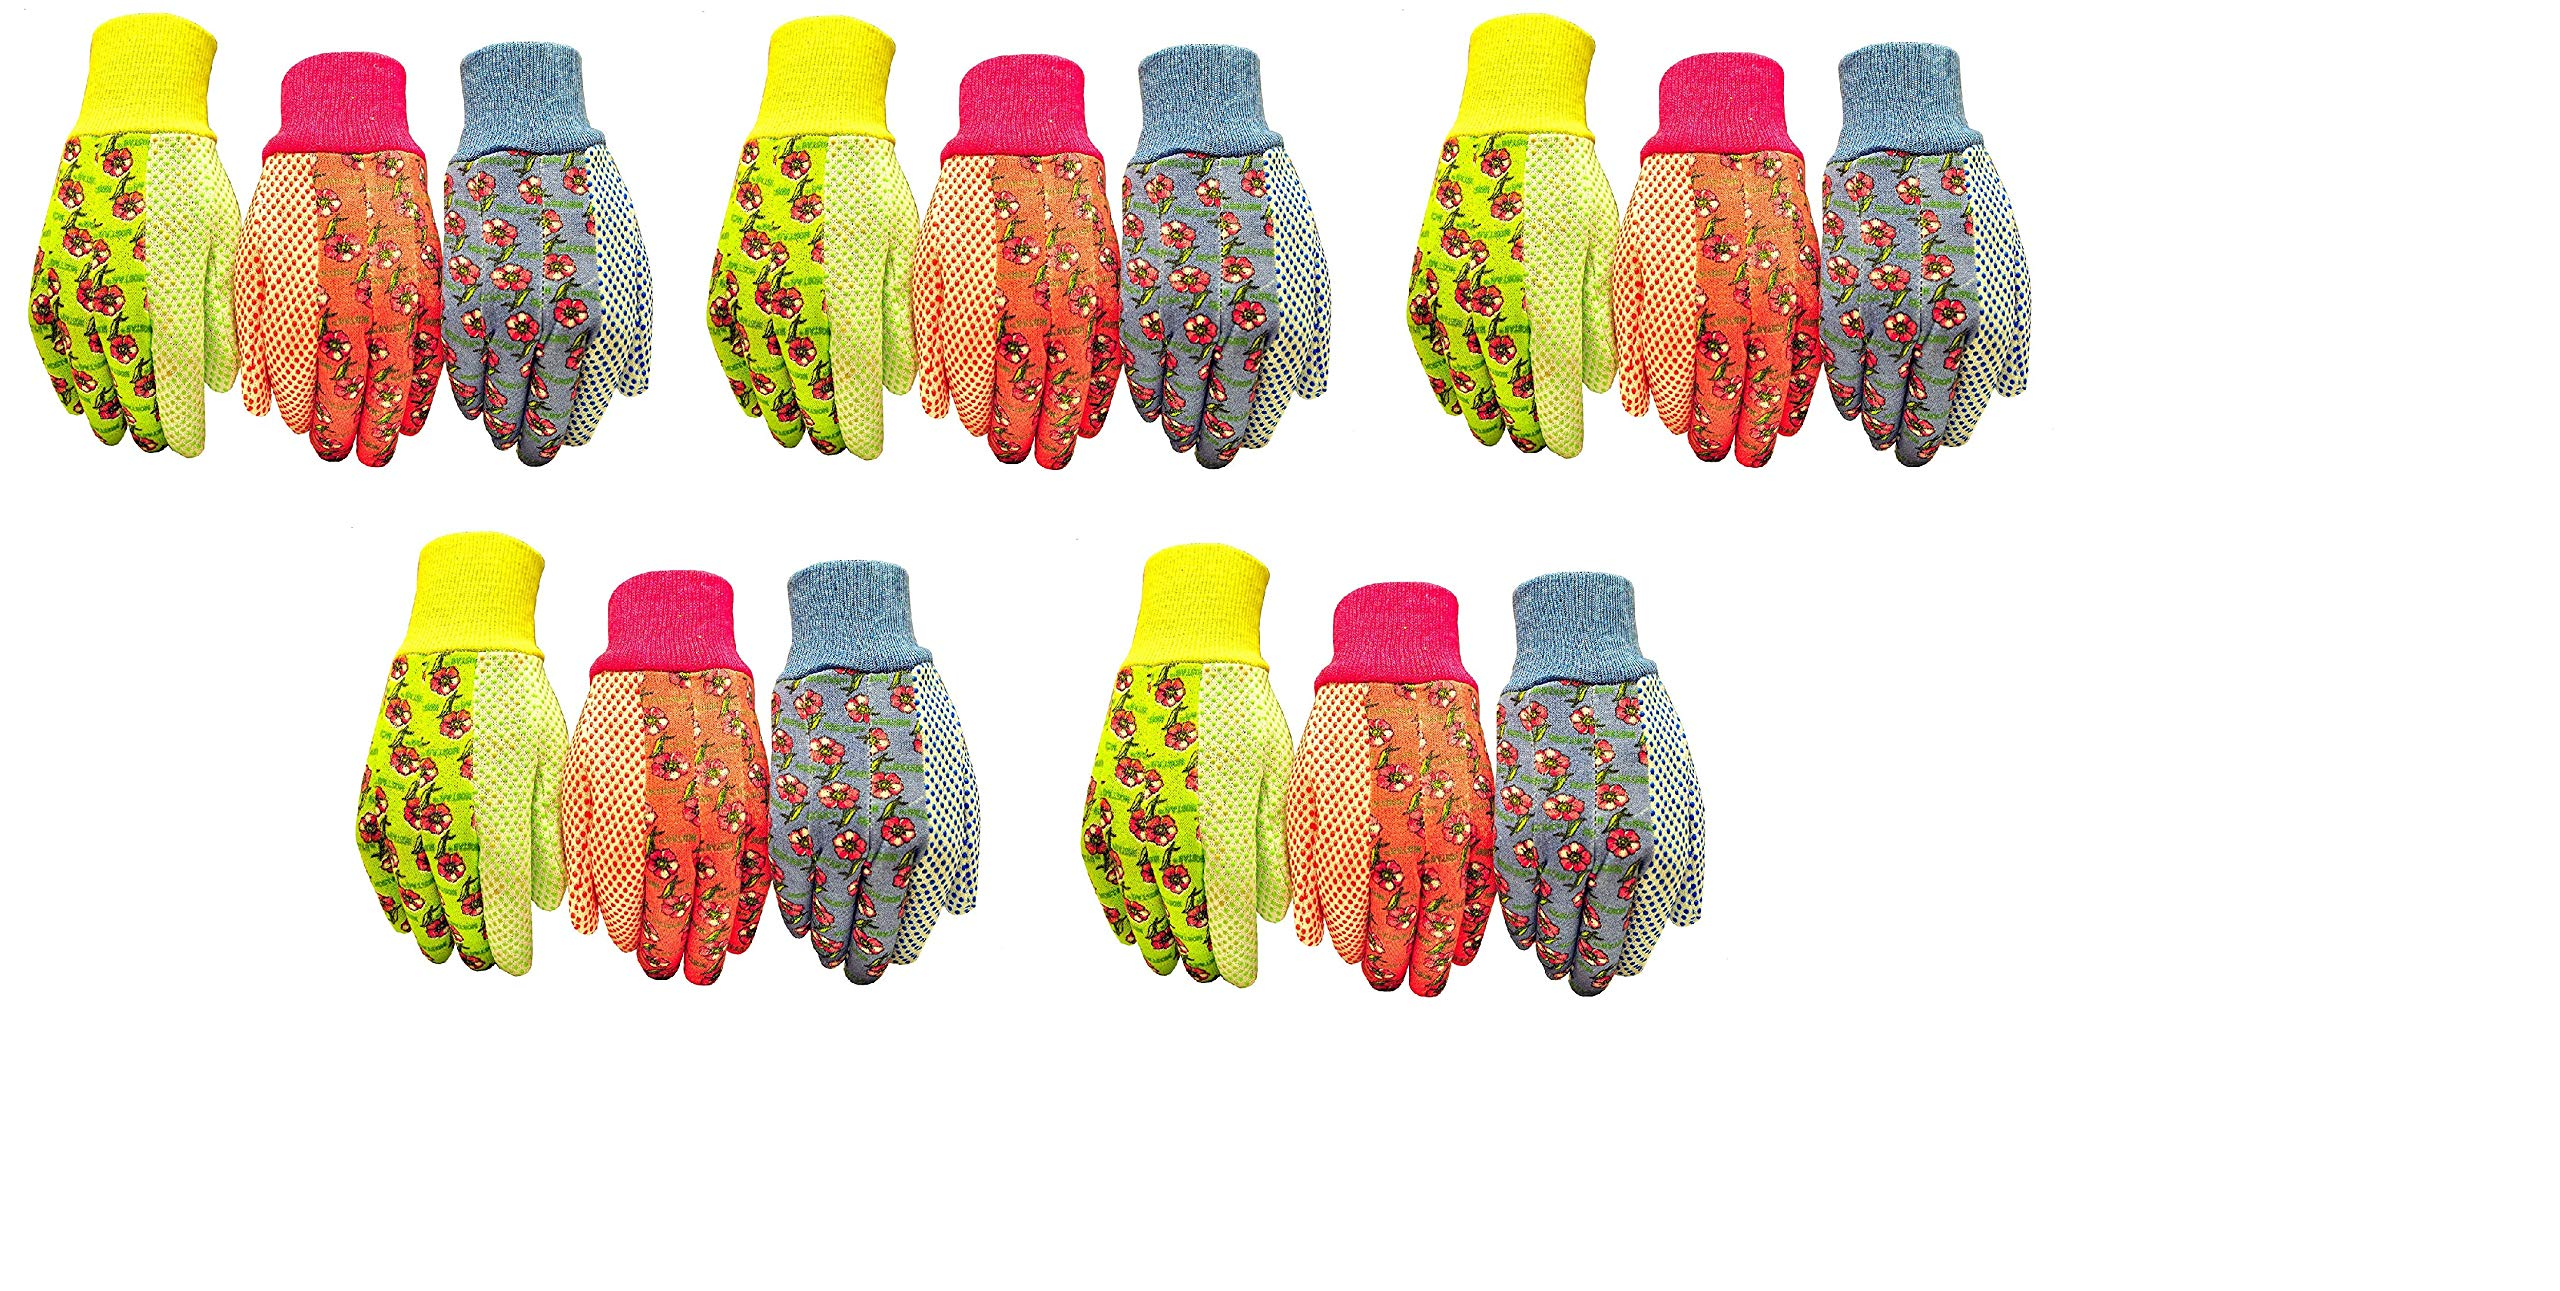 G & F 1852-3 Women Soft Jersey Garden Gloves, Women Work Gloves, 3-Pairs Green/Pink/Blue per Pack (Fivе Расk) by G & F Products (Image #1)